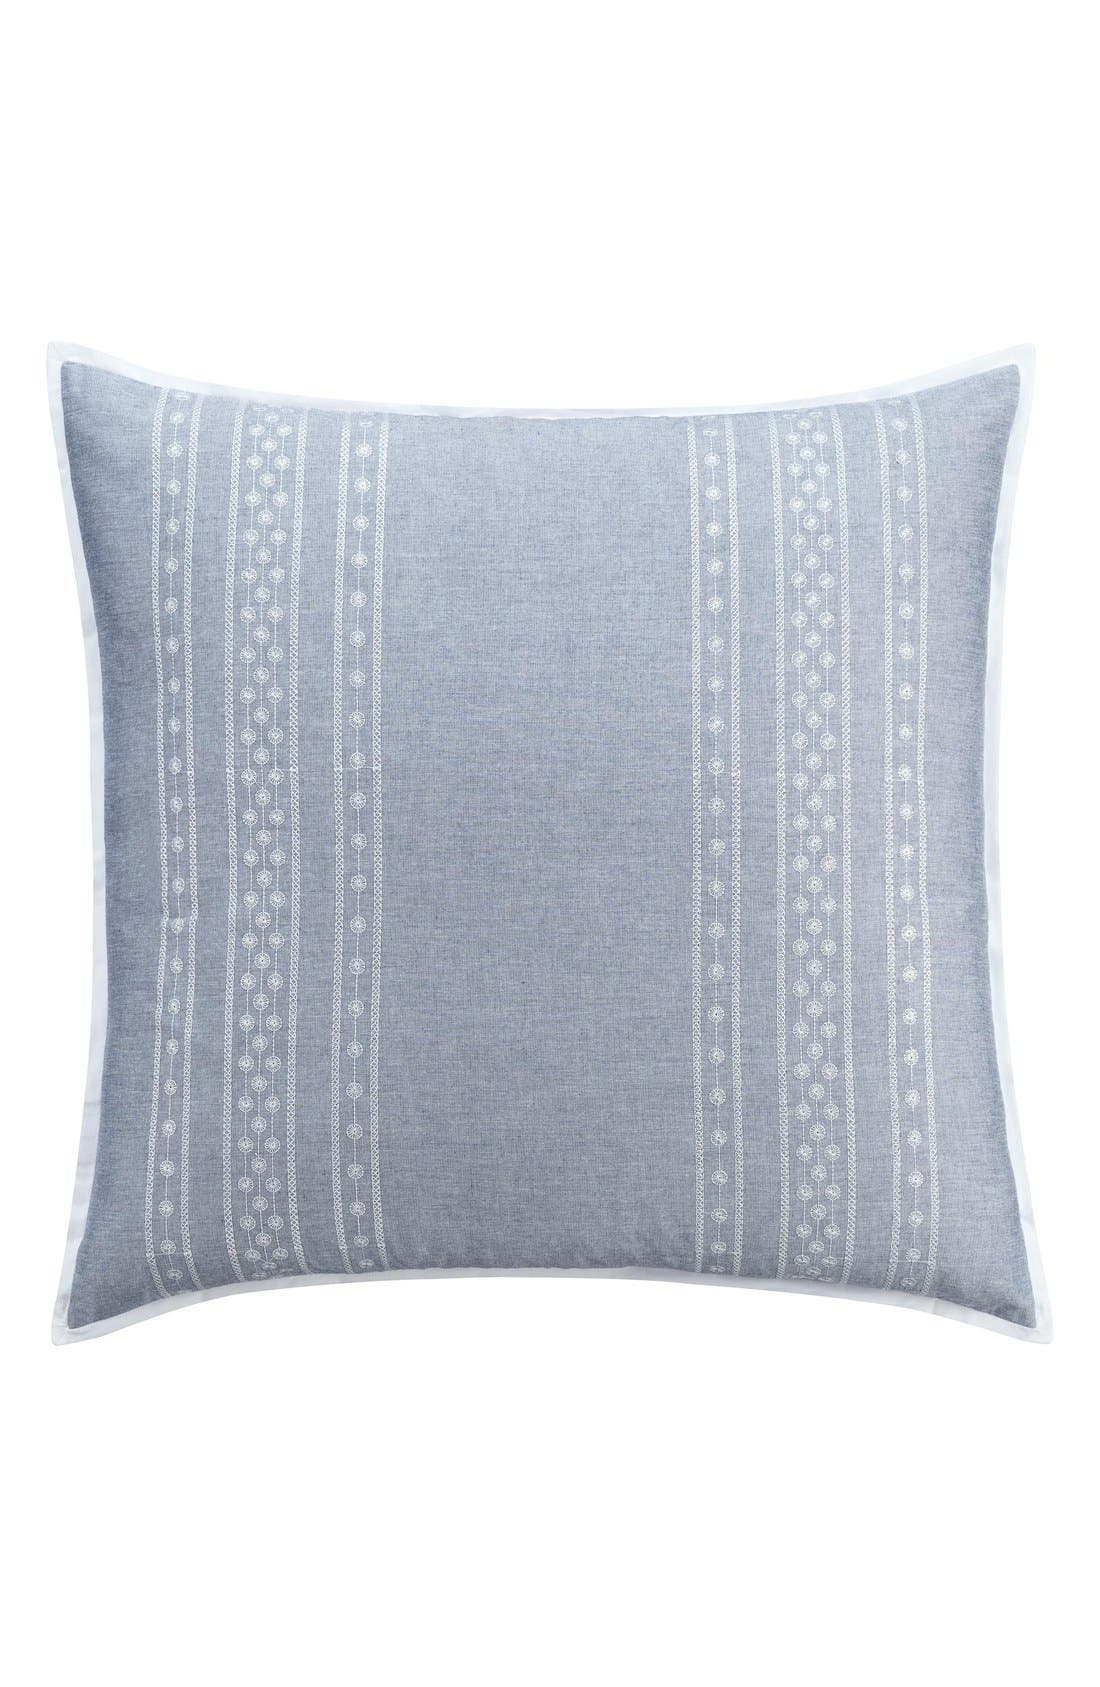 'Chambray Dot' Euro Sham,                             Main thumbnail 1, color,                             Blue